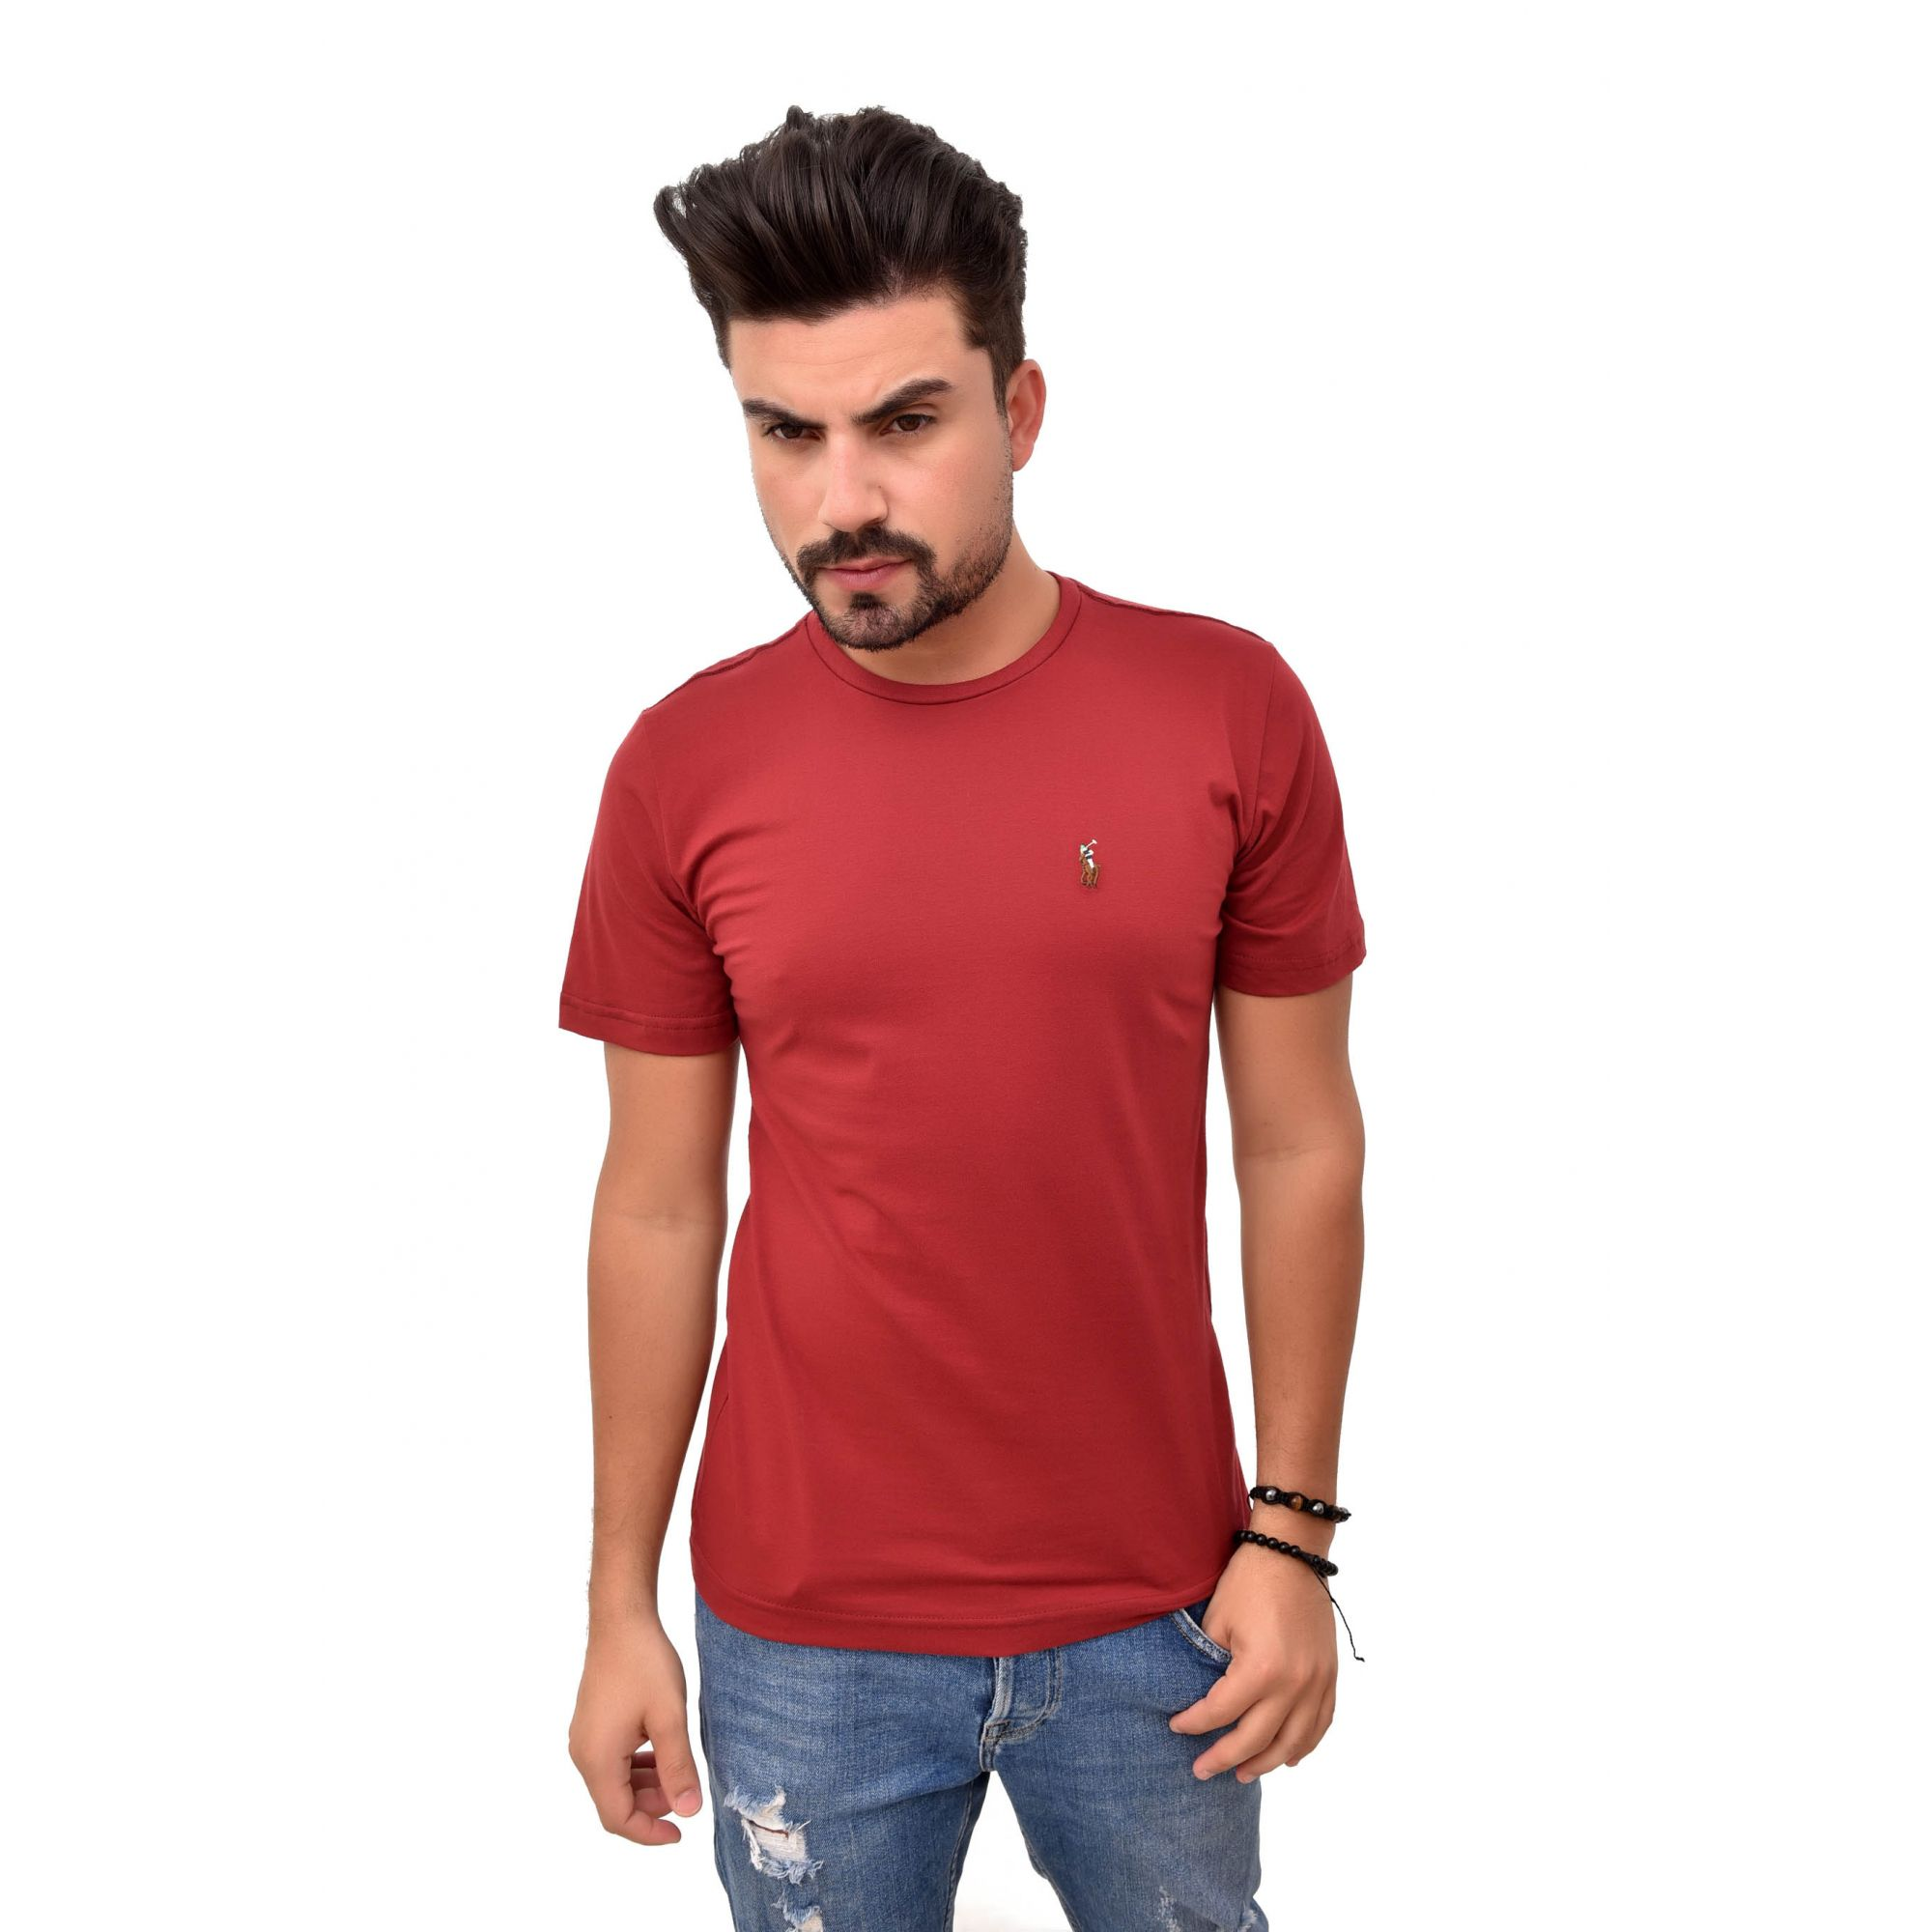 Camiseta Basic RL Vinho Colored